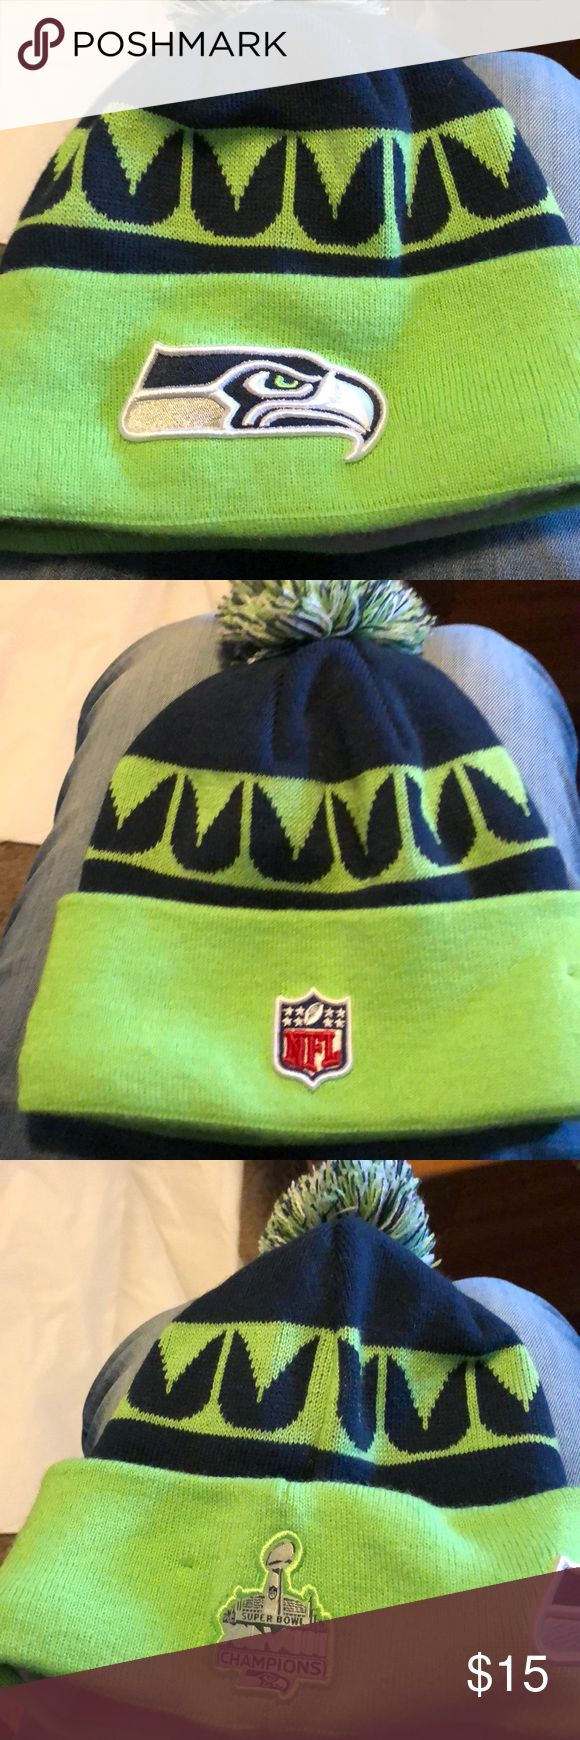 NFL Seattle Seahawks Fleece Hat Brand new never worn. One size fits most. Really soft warm fleece on the inside! Accessories Hats